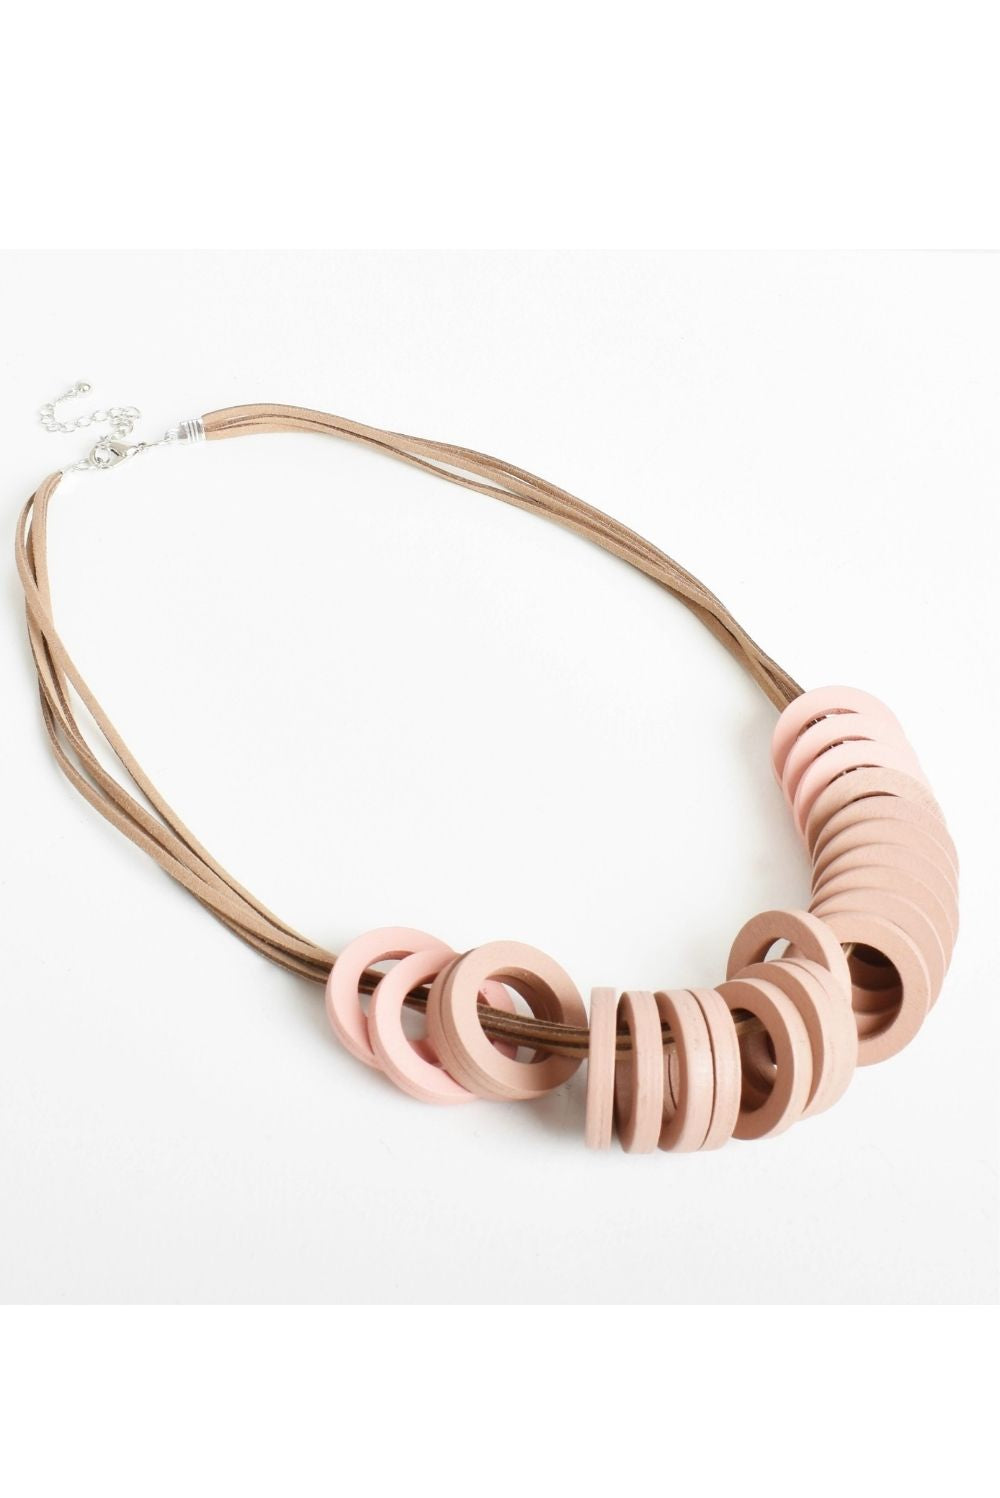 Timber Ring Necklace In Mocha